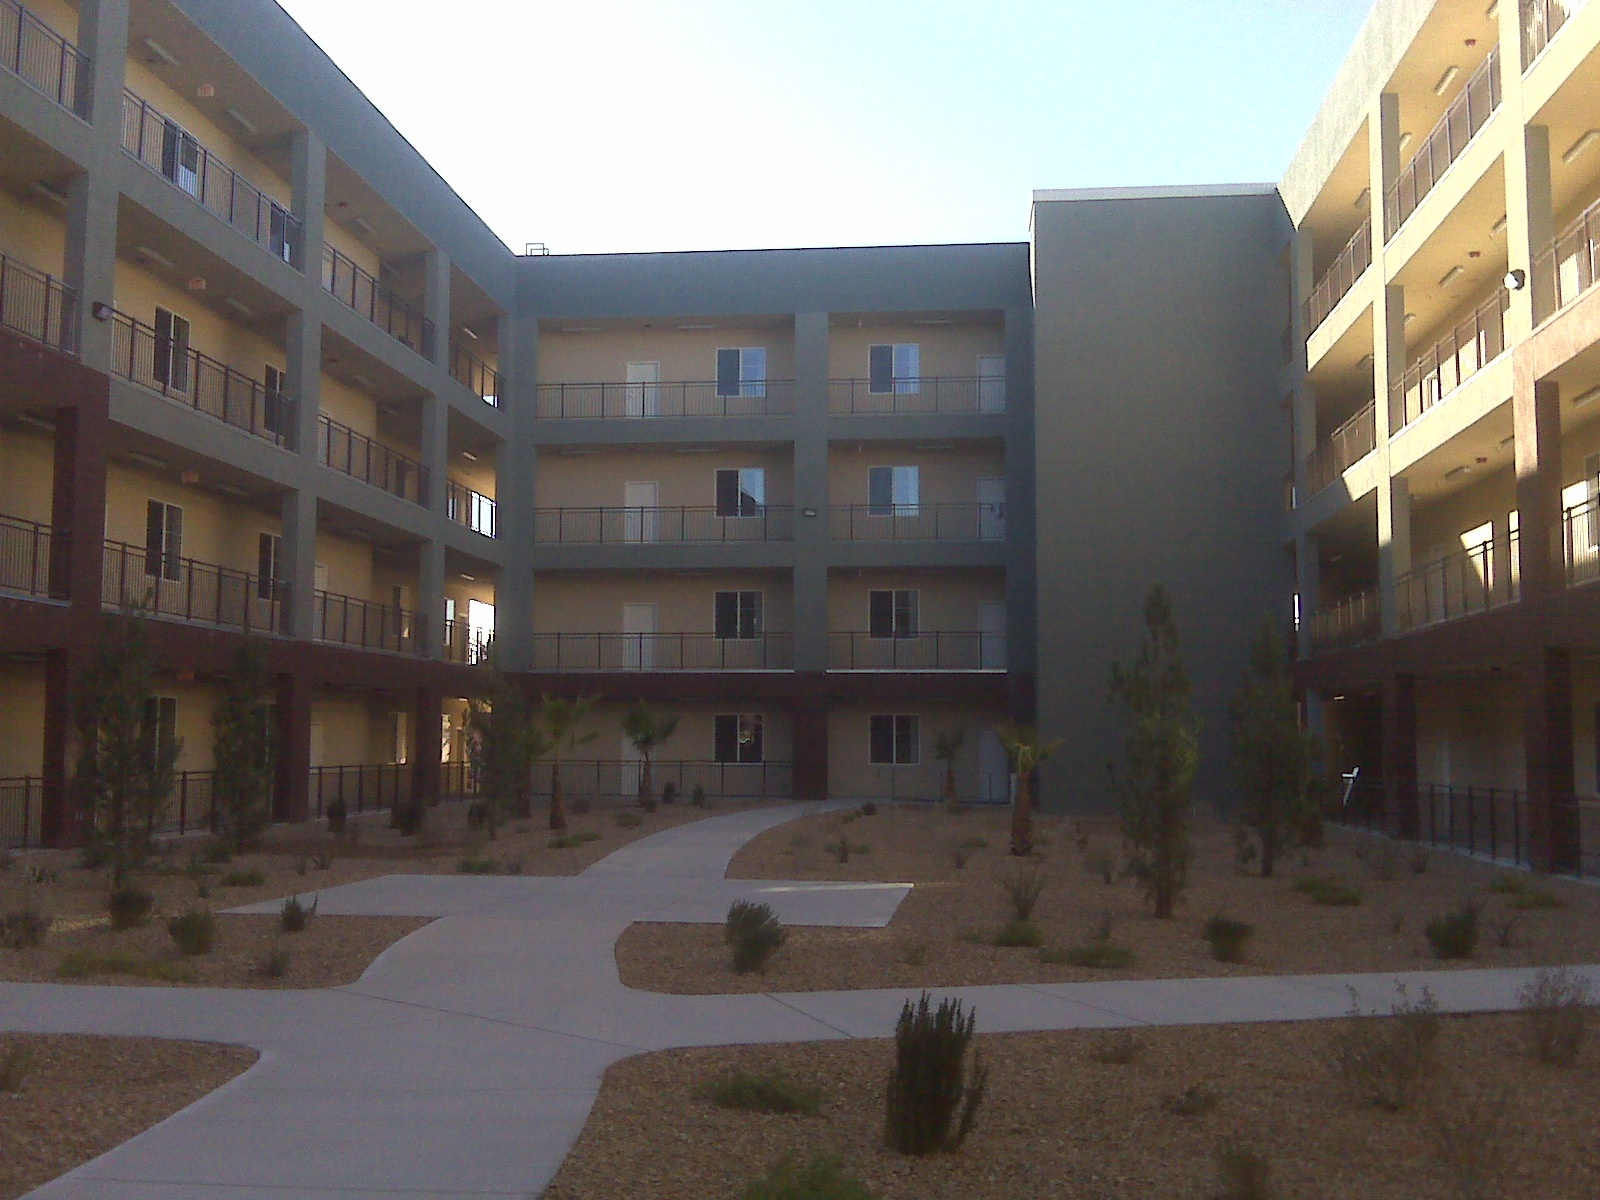 Multi-Family Housing | Premier SIPS: Structural Insulated Panels